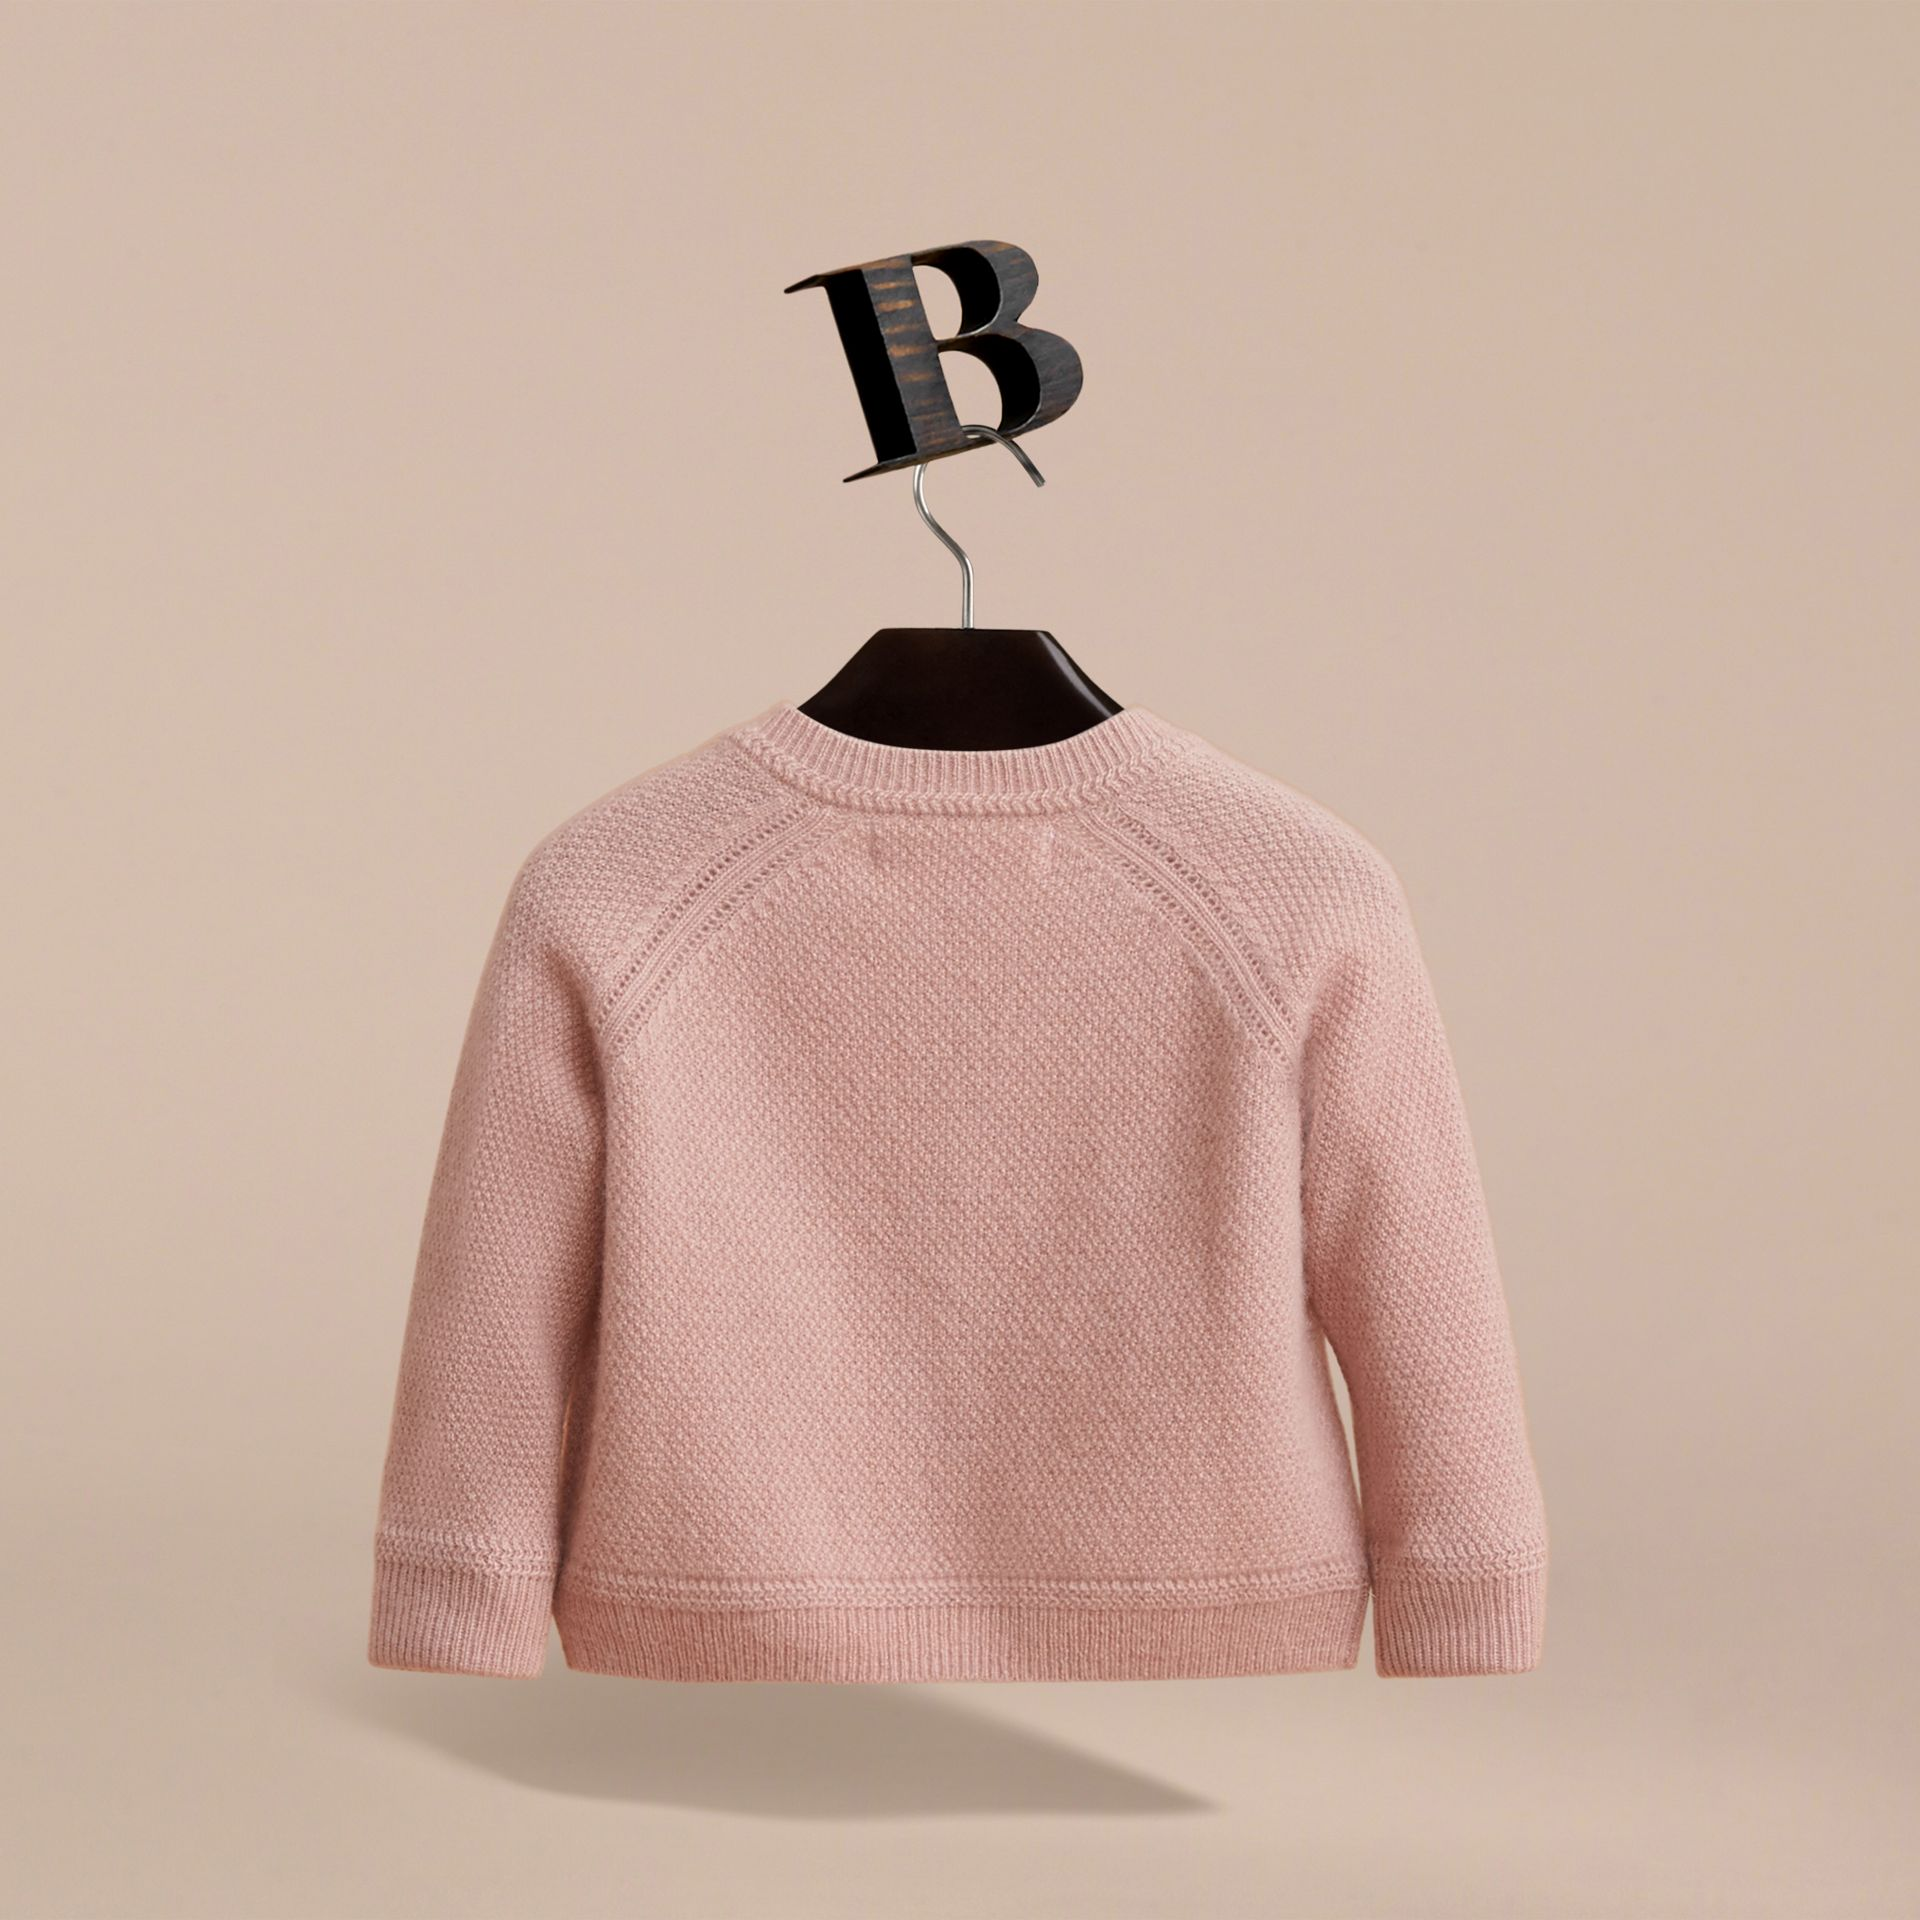 Textured Knit Cashmere Cardigan in Dusty Pink | Burberry - gallery image 3